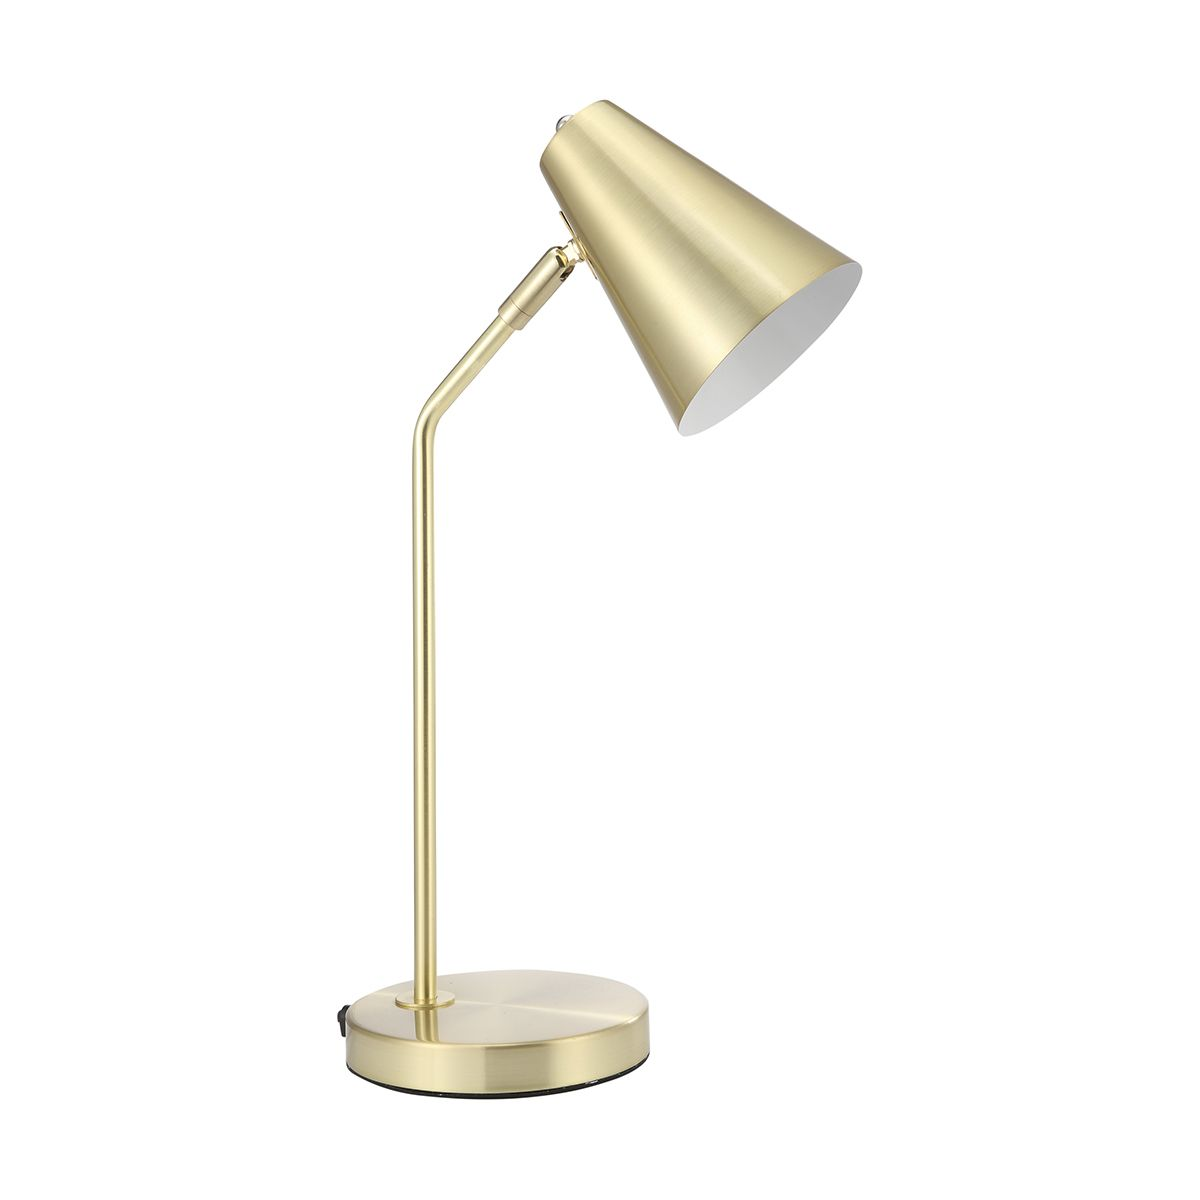 Brass Look Desk Lamp Kmart Lamp Desk Lamp Modern Lamp